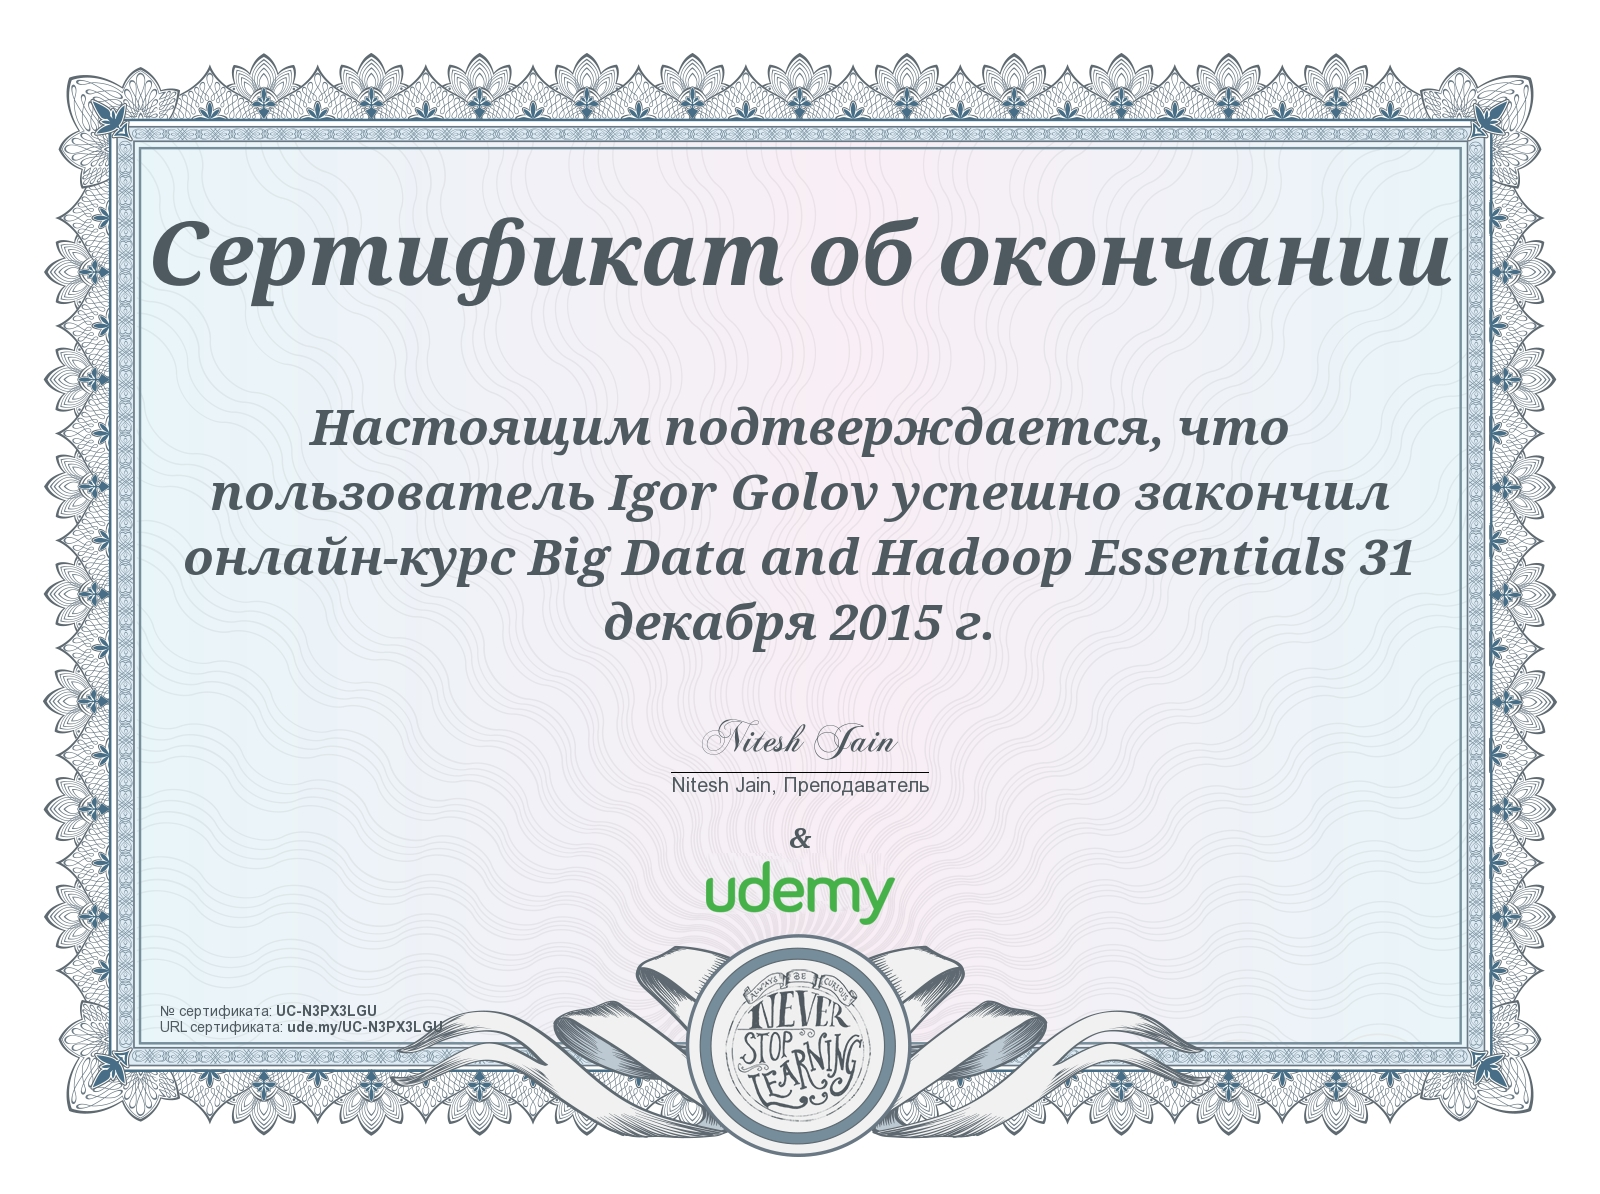 Images Of Udemy Certificate Spacehero